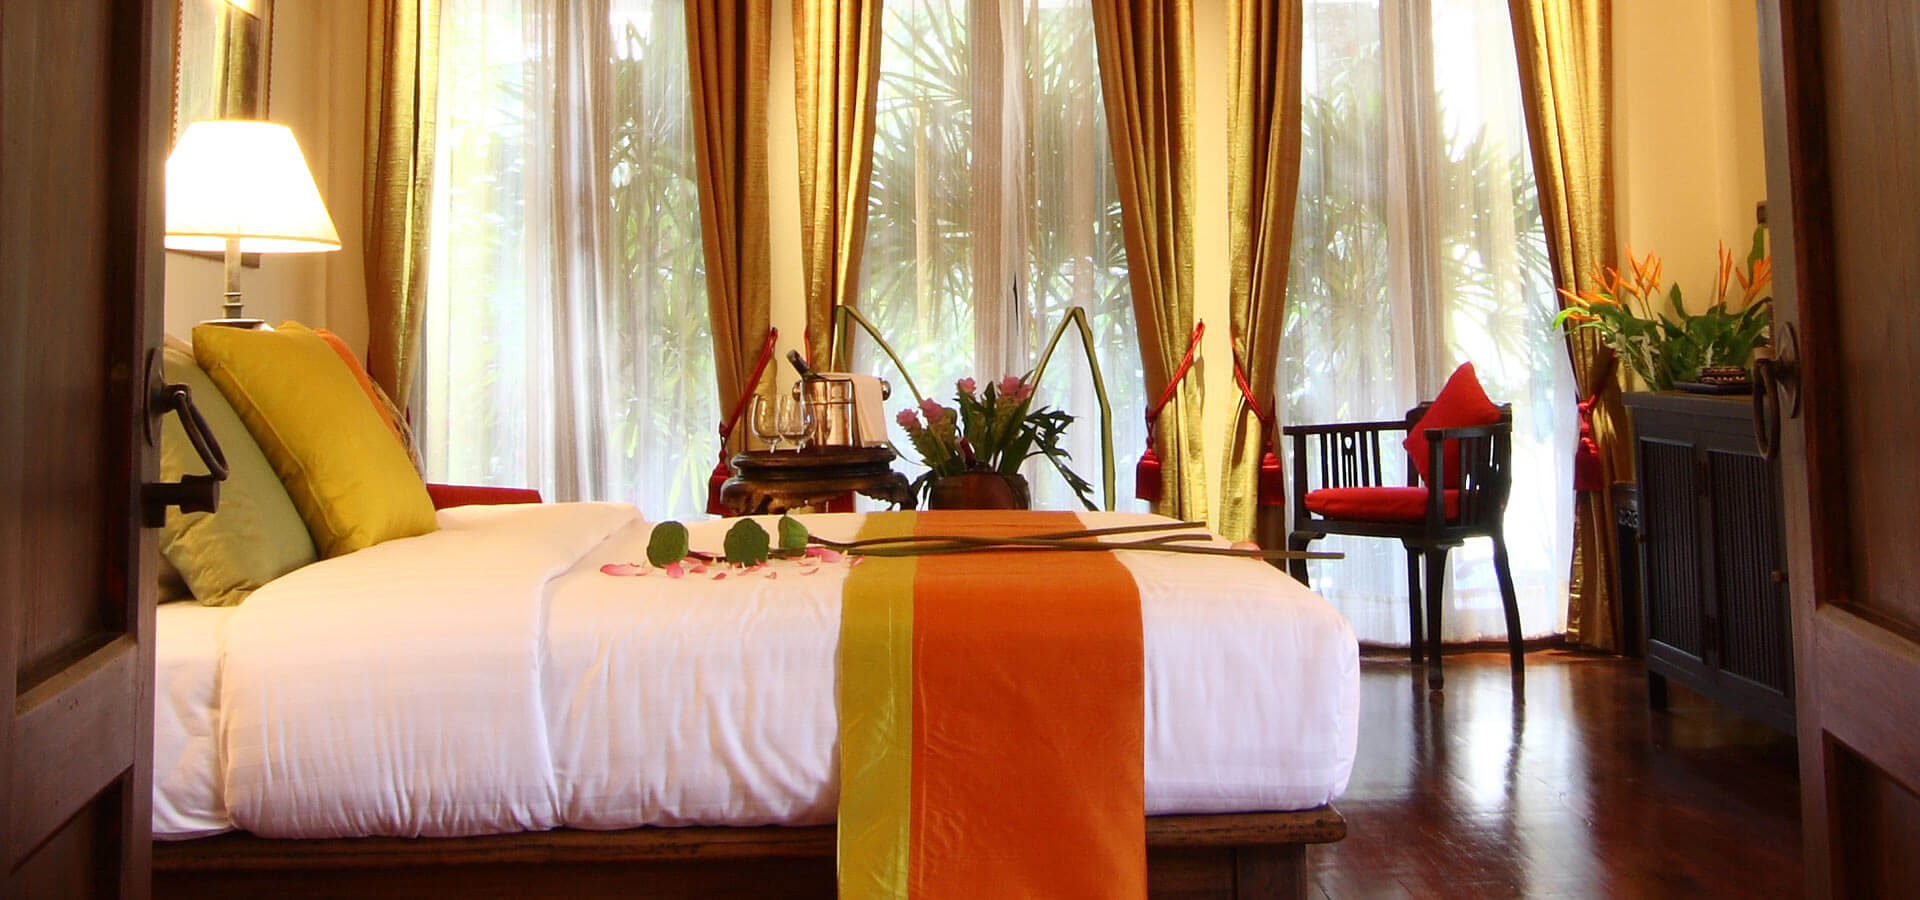 Special 3 Night Packages @ AriyasomVilla: 1.1 Studio Room